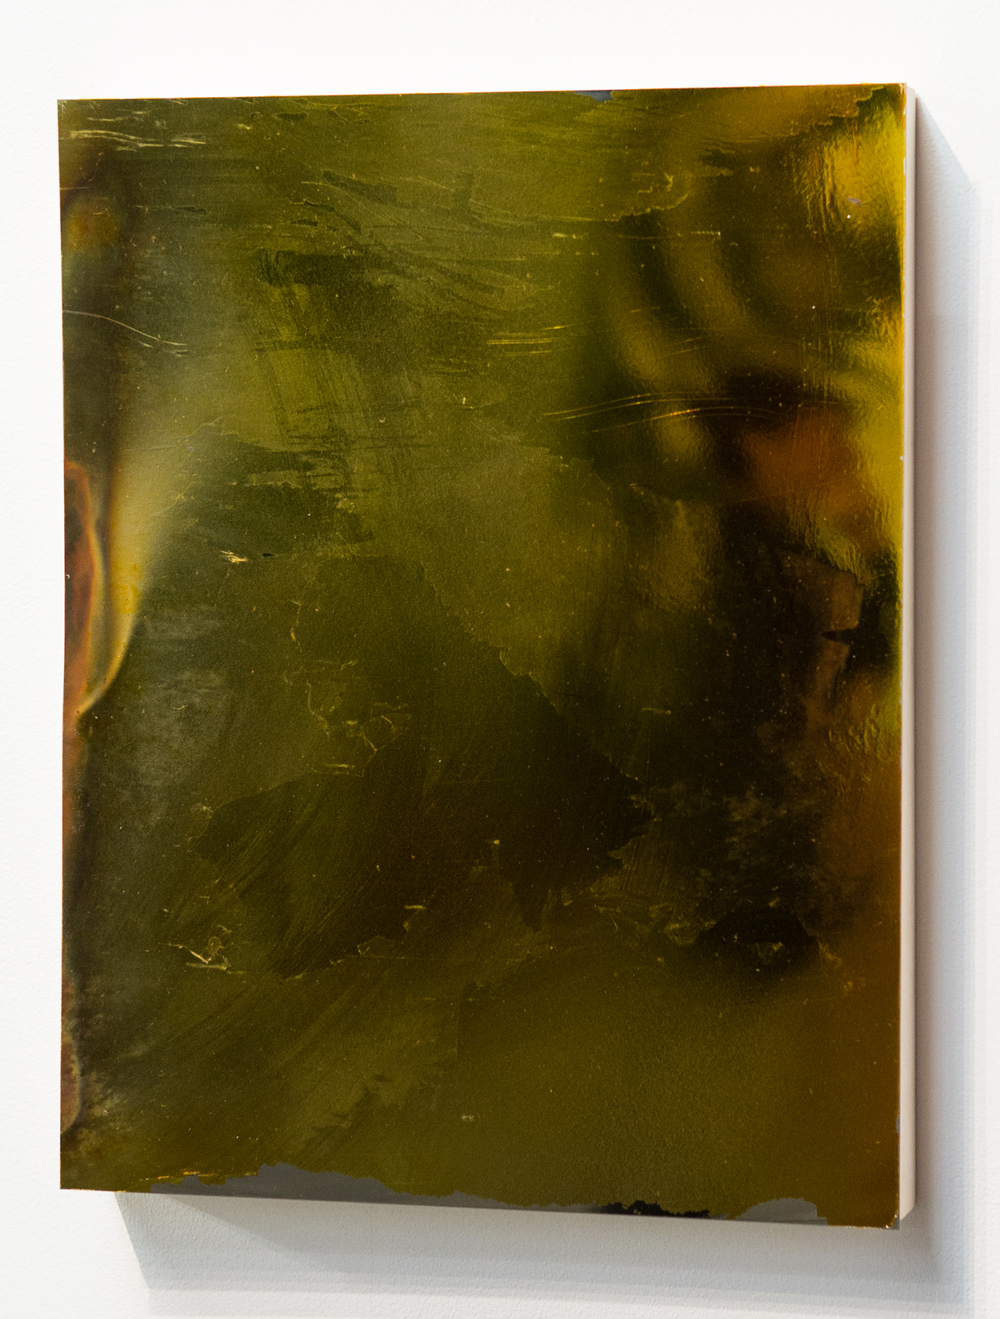 MLSL_09_Bunny  , 2015  Gold tint on stainless steel  18 x 14 in (45.72 x 35.56 cm)